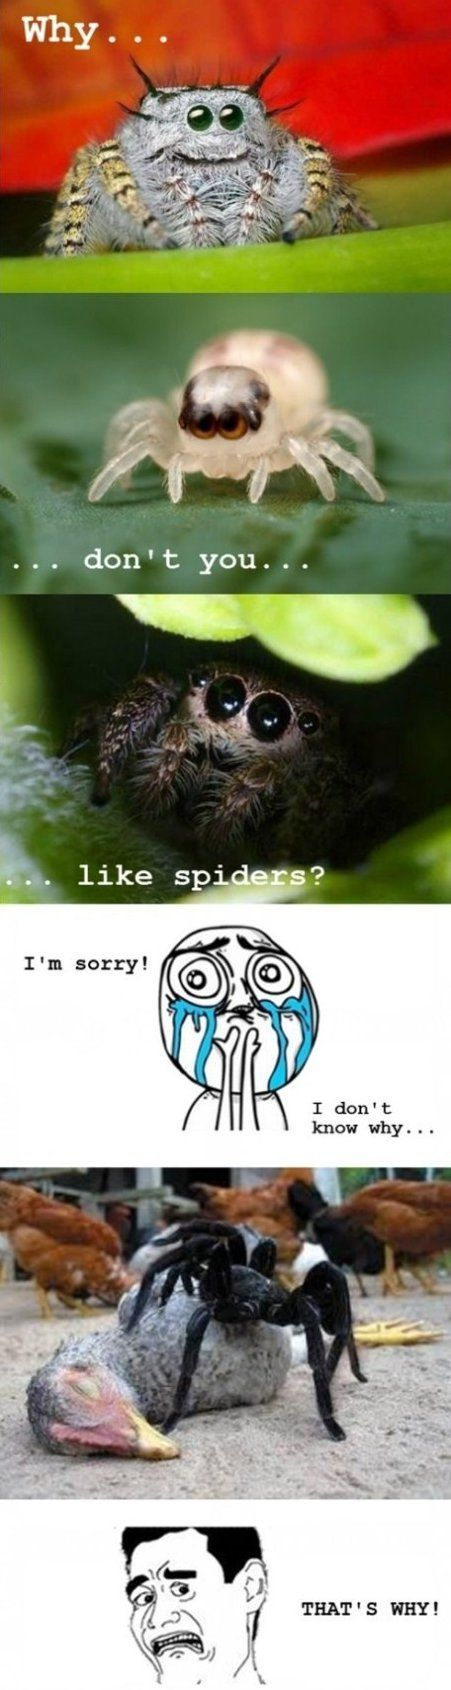 Why Don't You Like Spiders They Are So Cute,